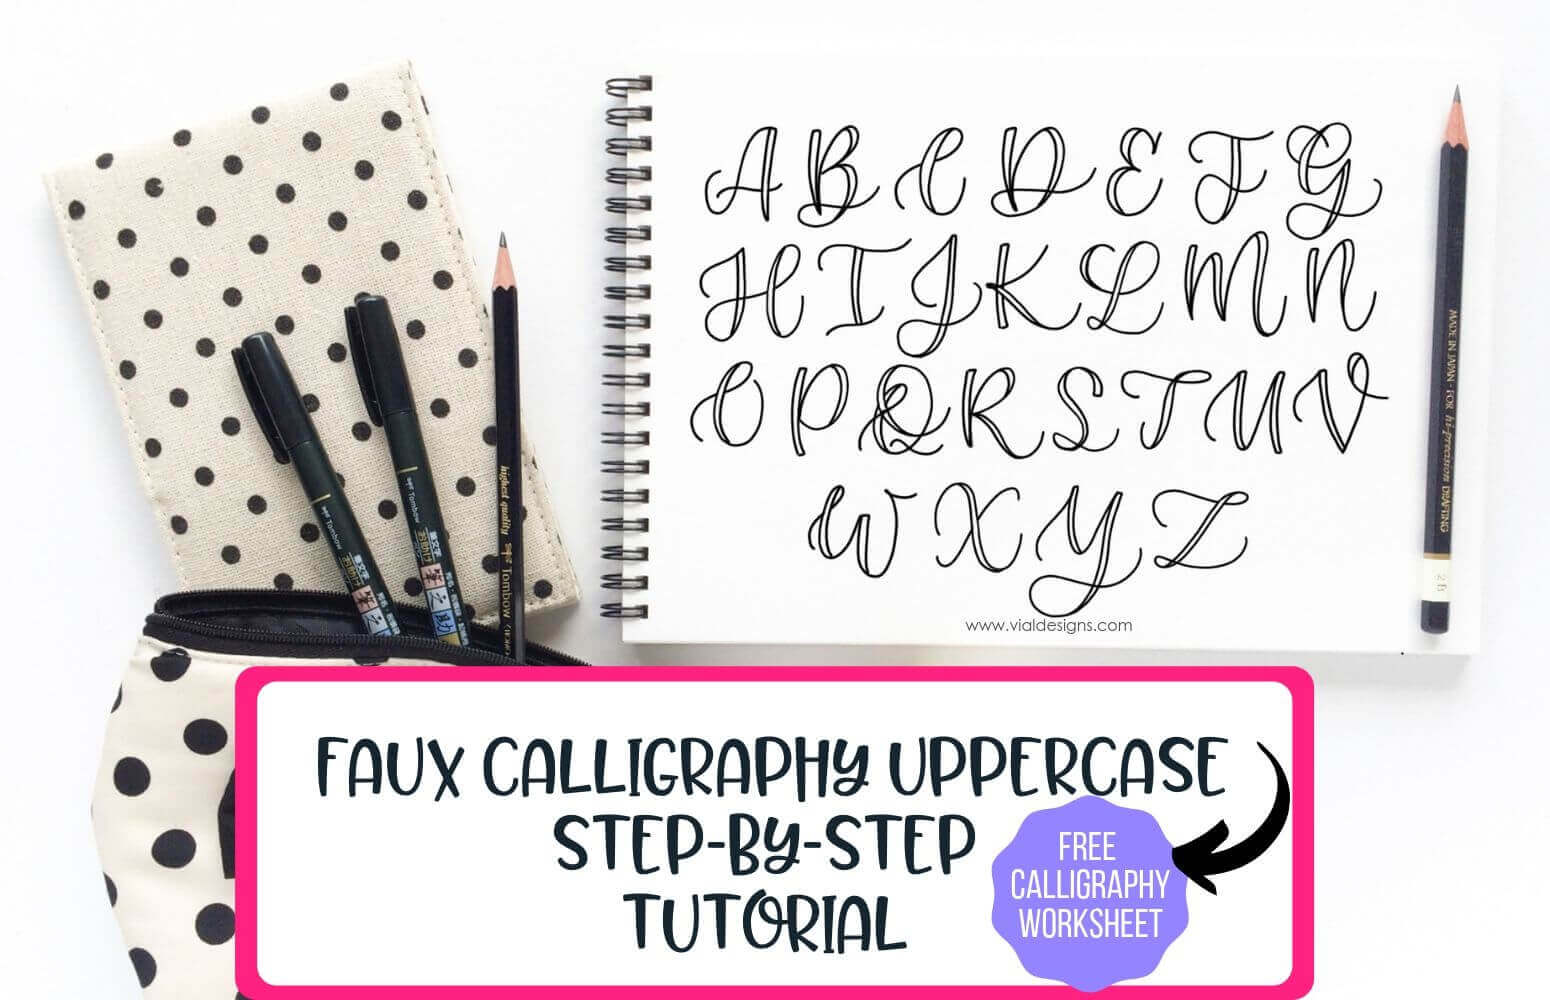 Faux Calligraphy Tutorial Uppercase Free Practice Shee